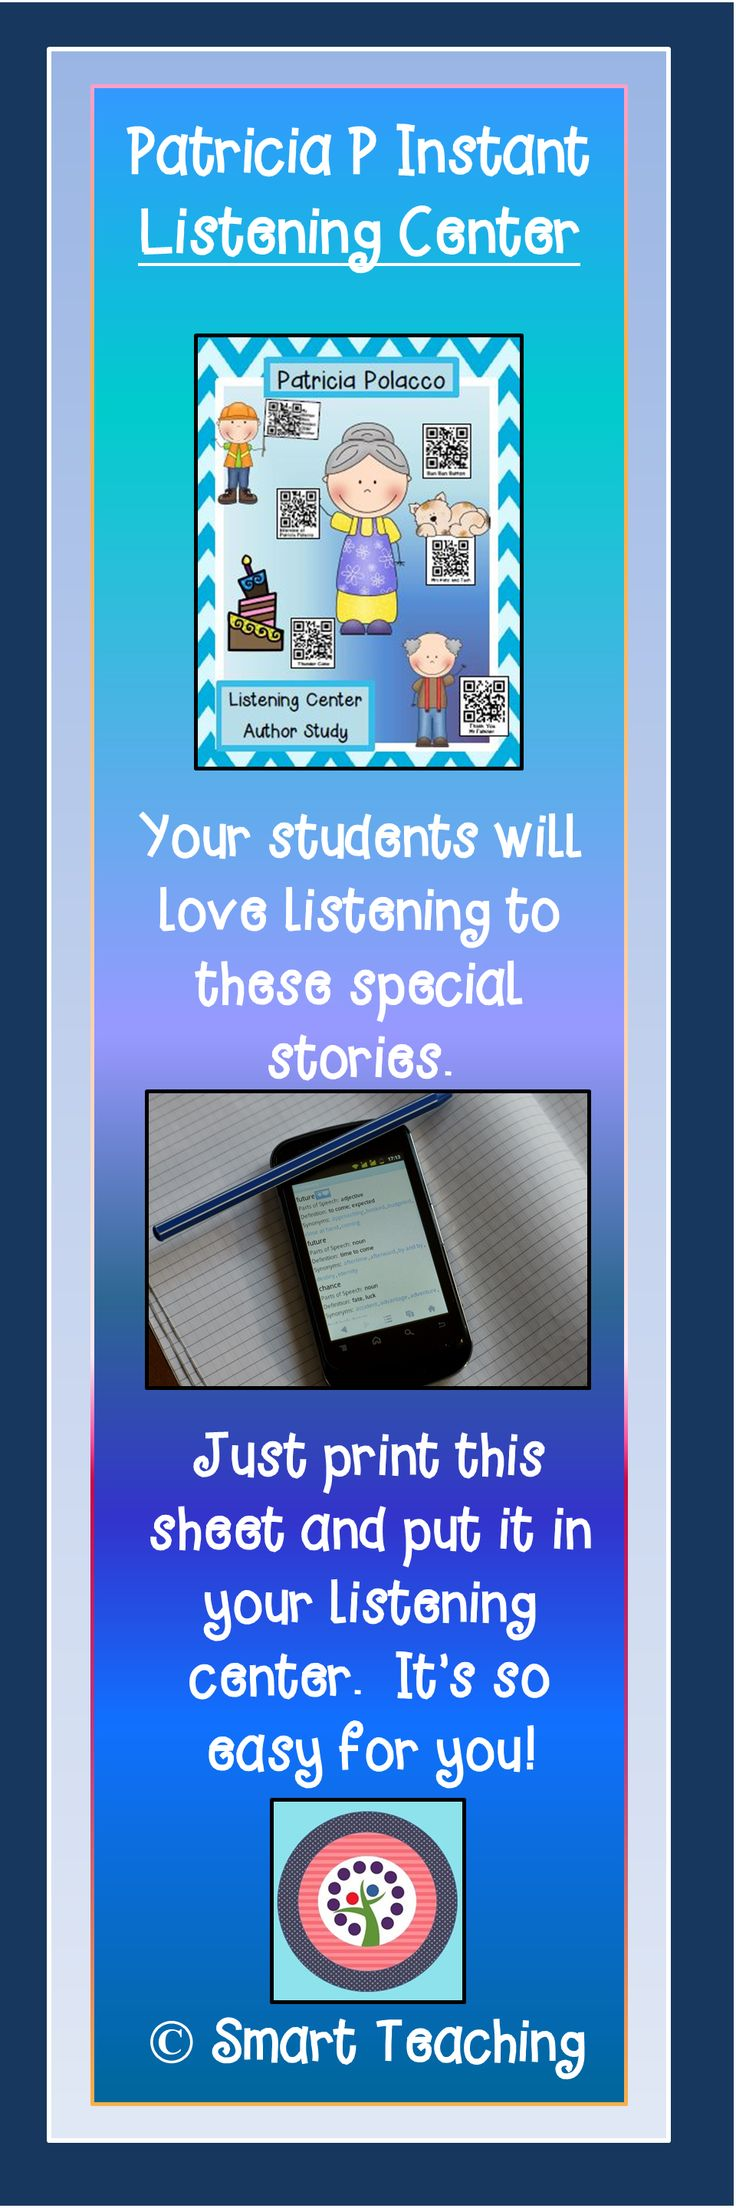 This instant listening center is so easy to use!  Your students will love scanning the QR codes and listening to new favorite stories written by Patricia Polacco.  $